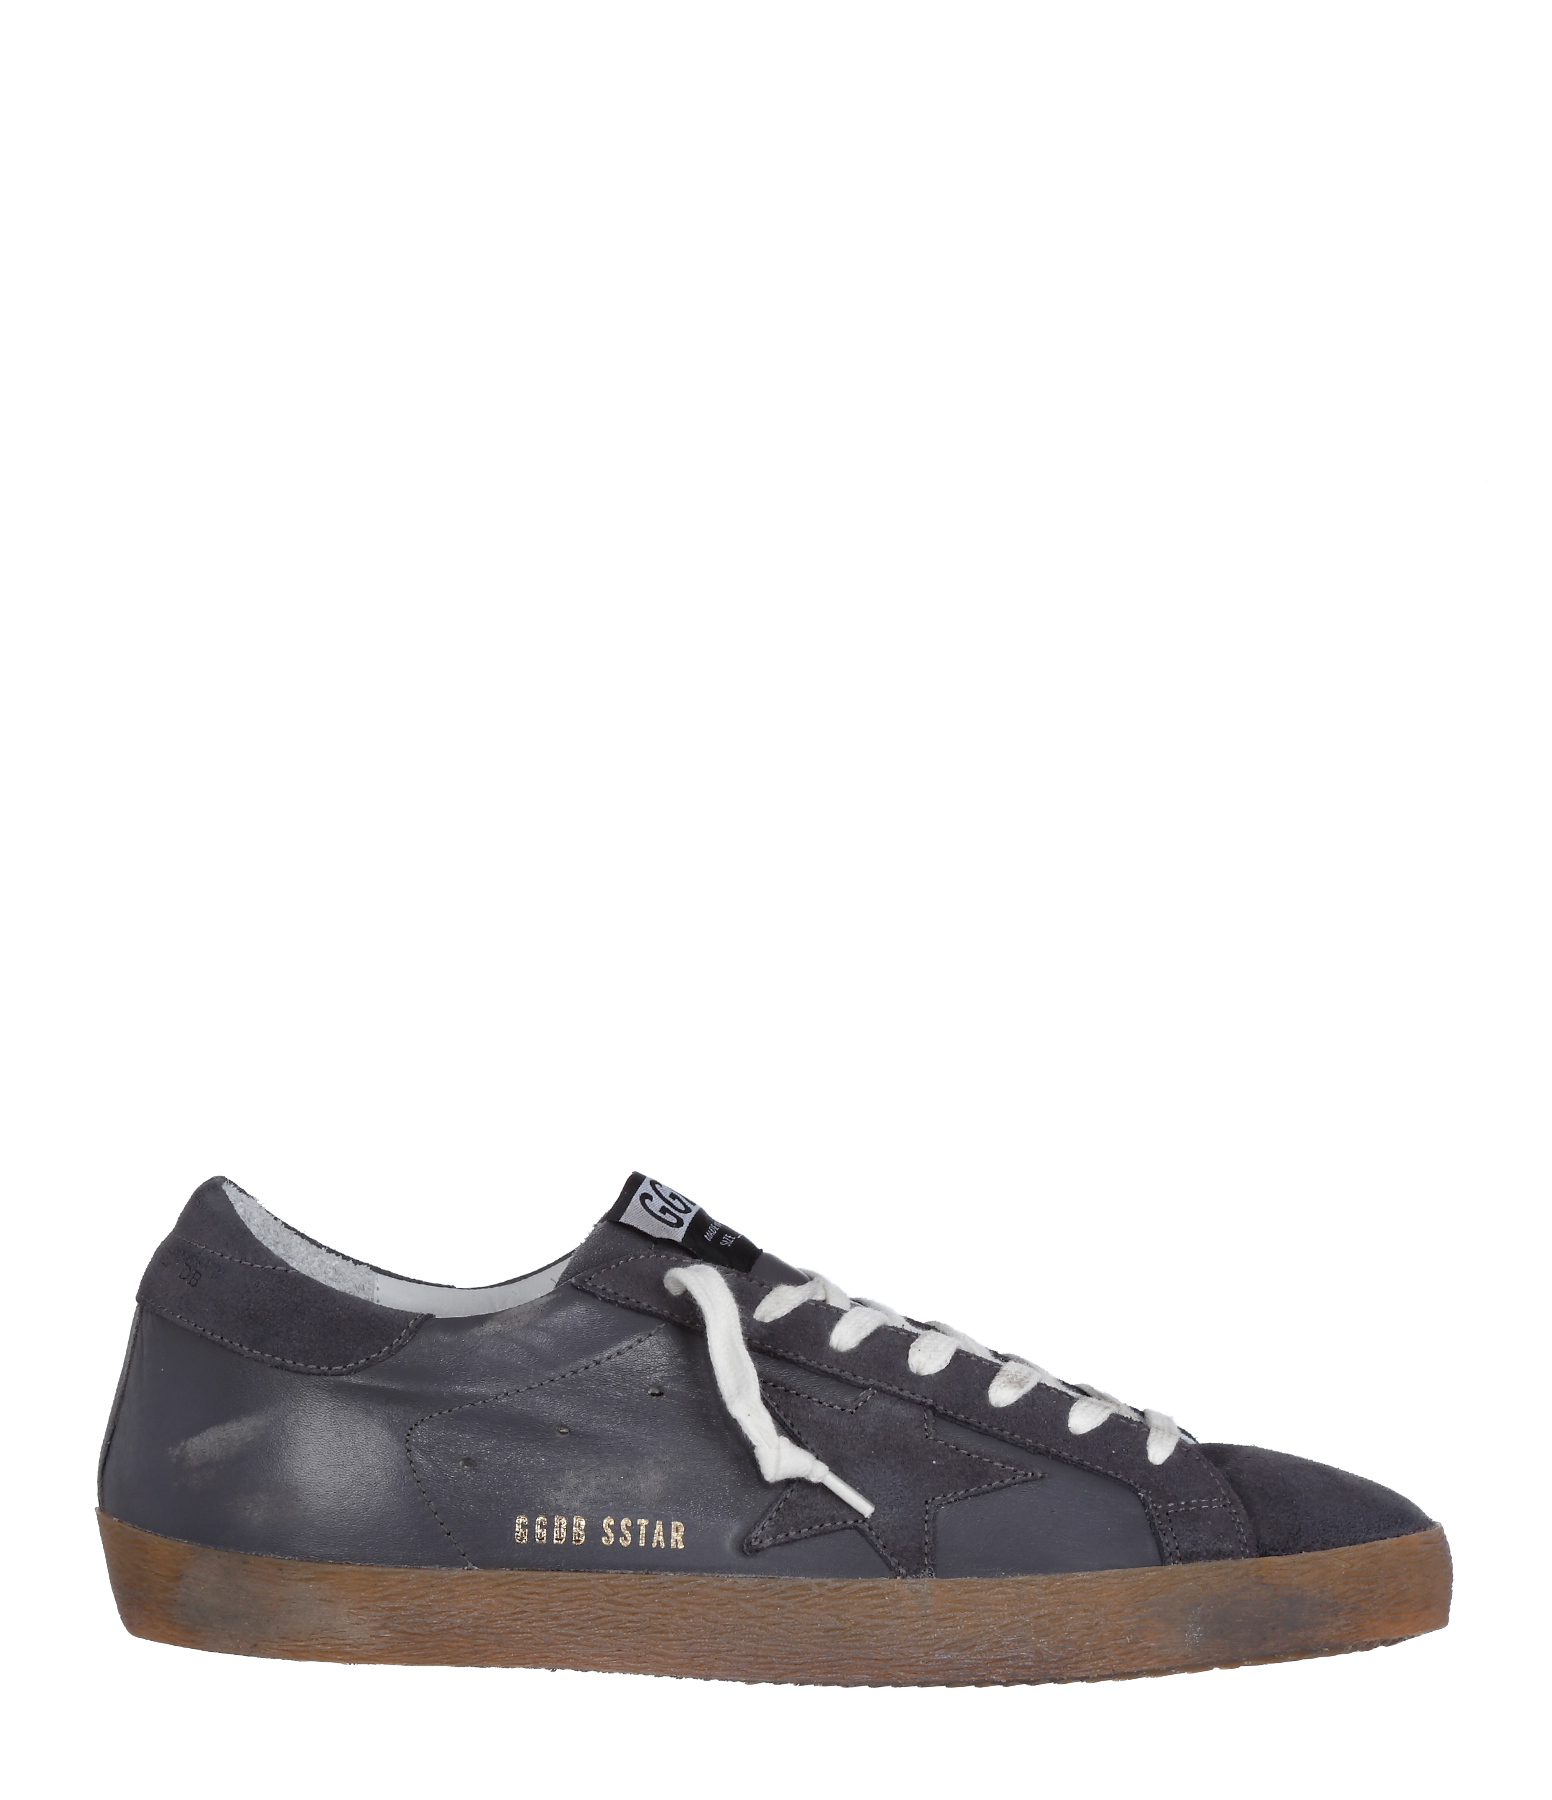 Sneakers Homme Superstar Grey Suede Leather star